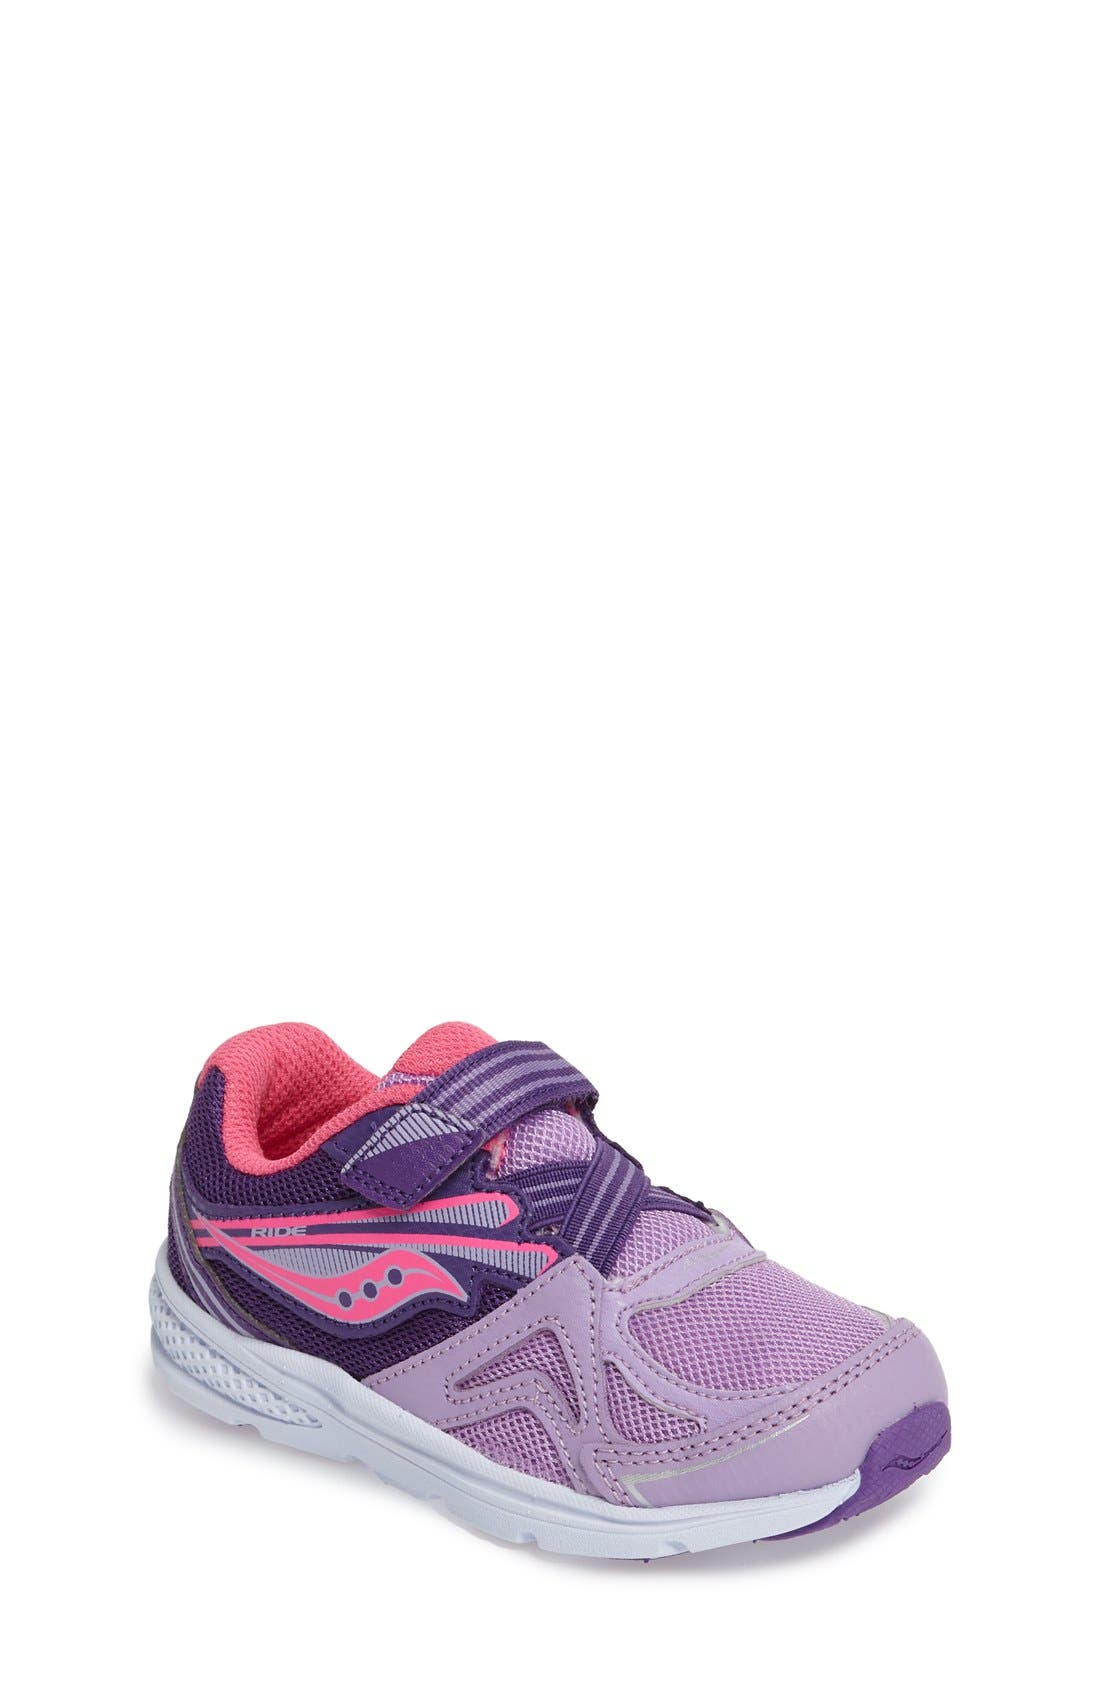 Alternate Image 1 Selected - Saucony Baby Ride Sneaker (Baby, Walker & Toddler)